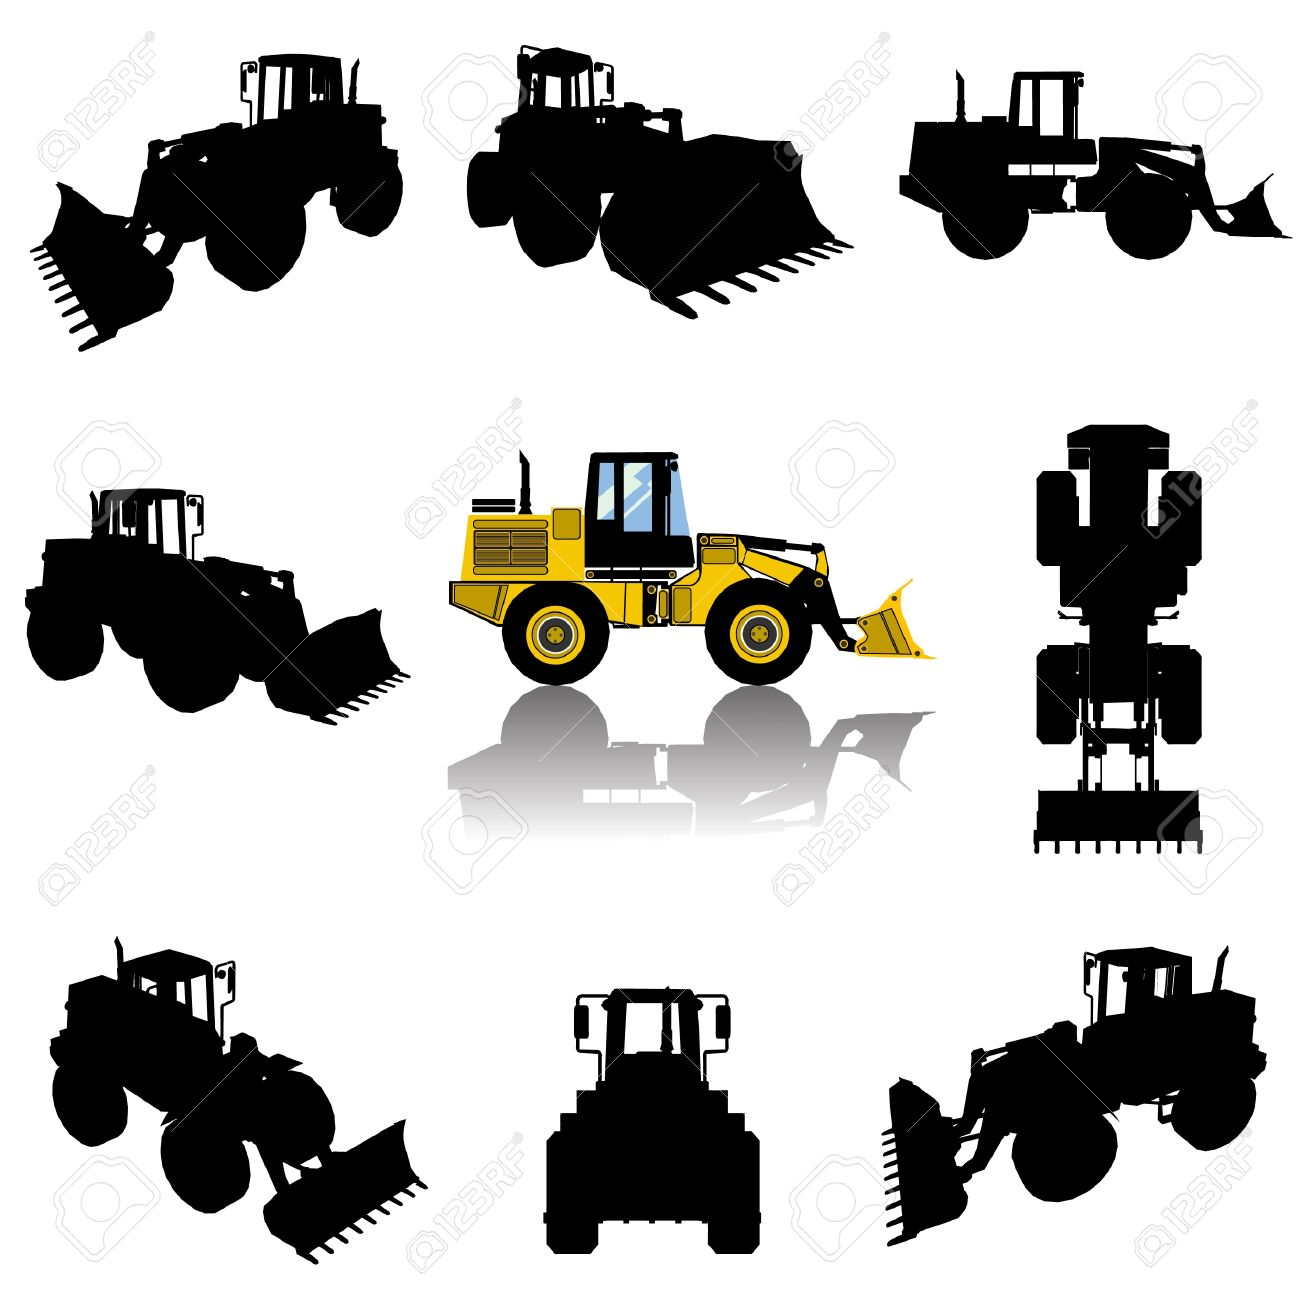 1,871 Backhoe Cliparts, Stock Vector And Royalty Free Backhoe.